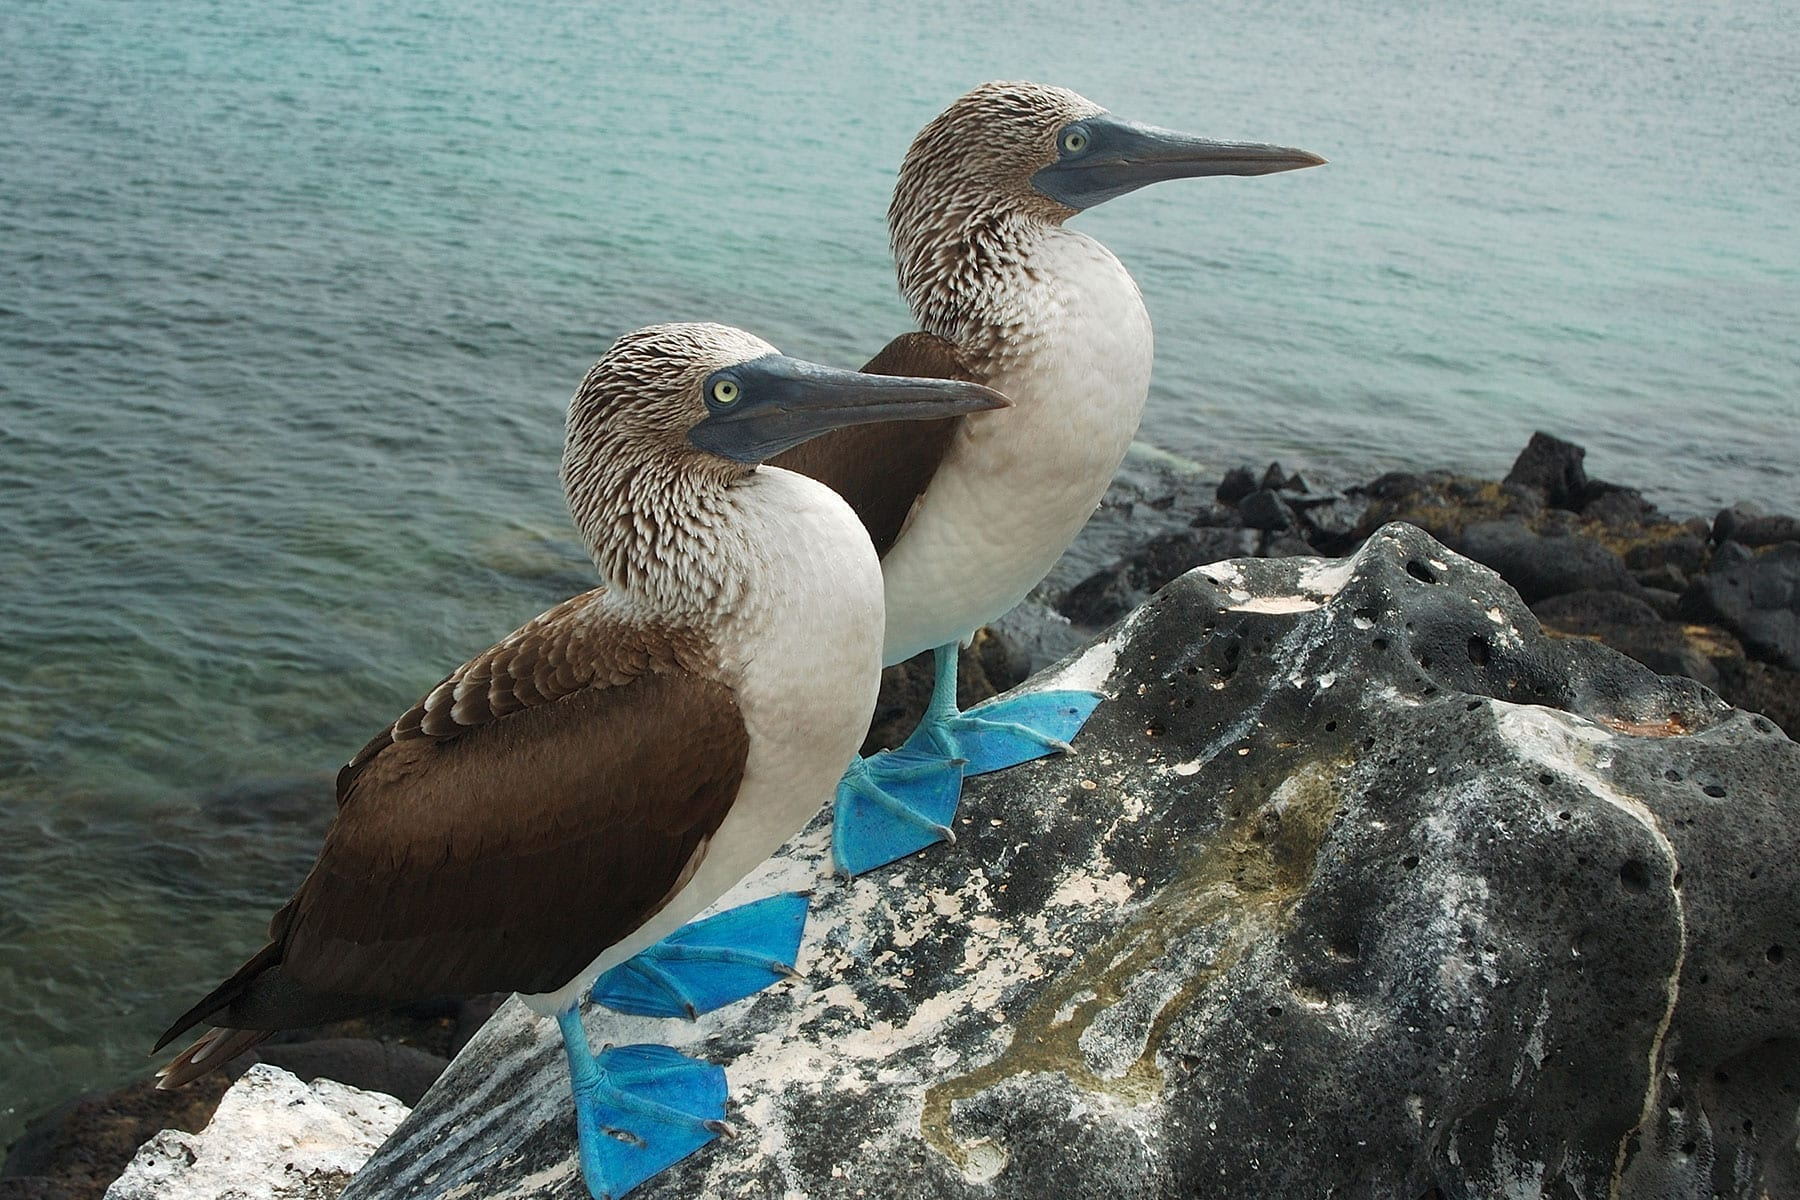 Combining the Galapagos Islands with Machu Picchu: When is the best time to go?